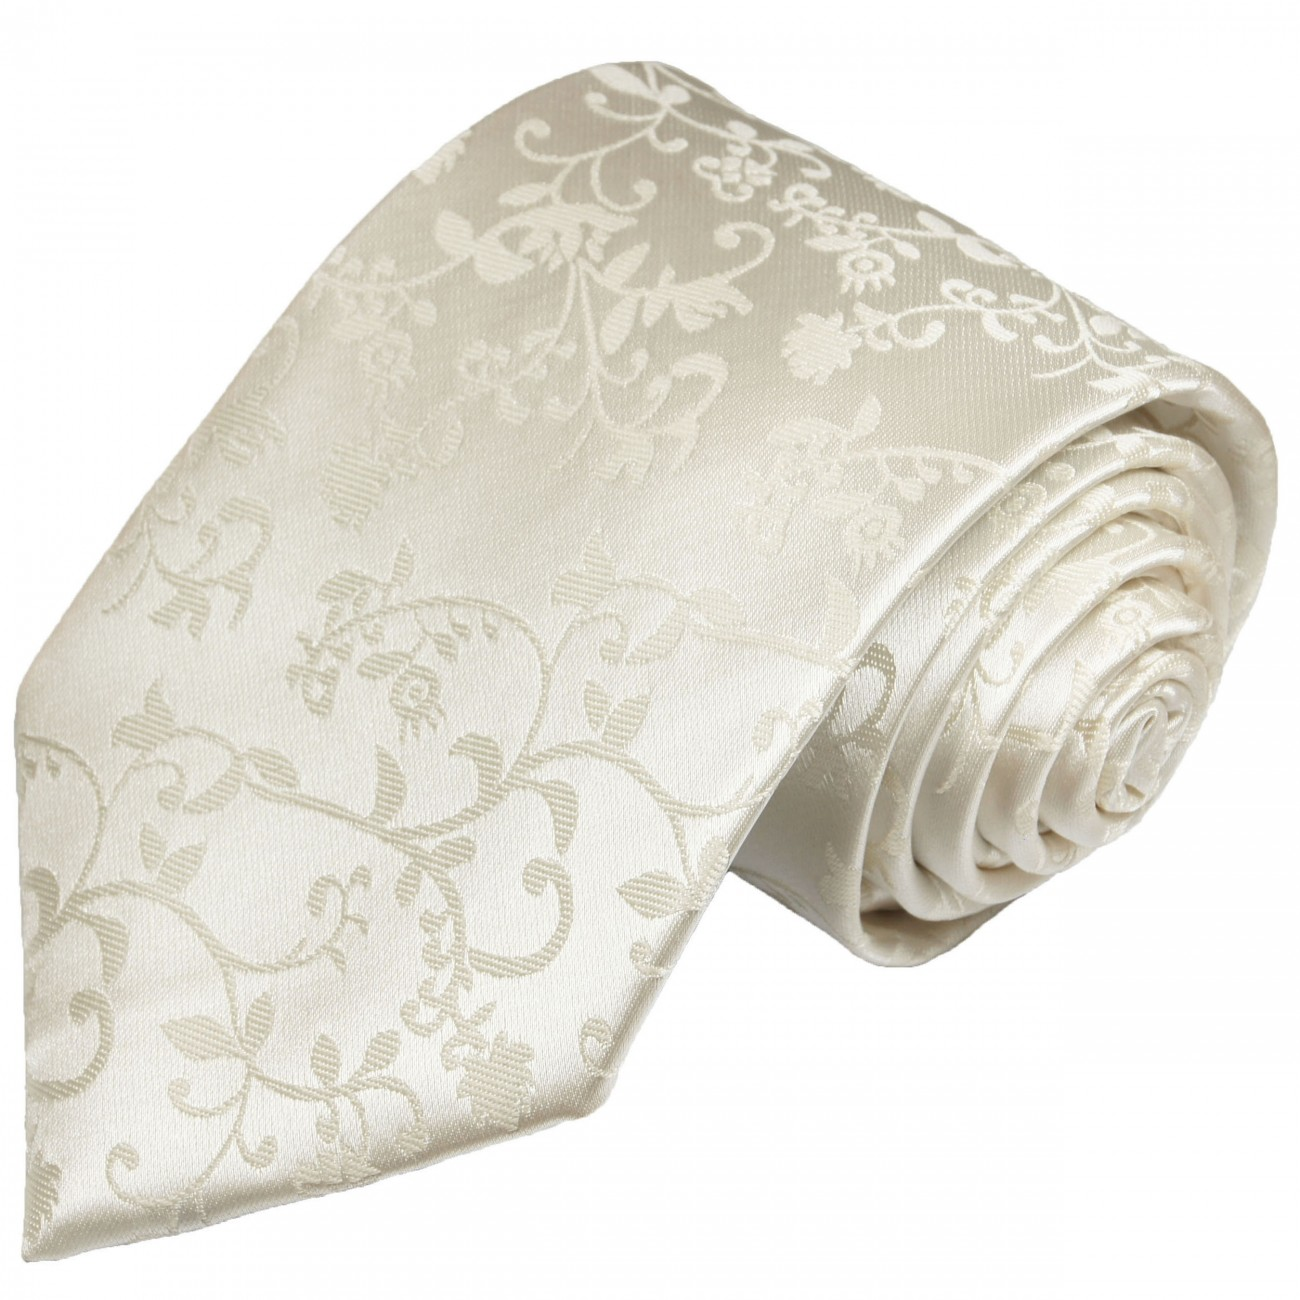 Wedding necktie 100% silk mens tie ivory floral 930